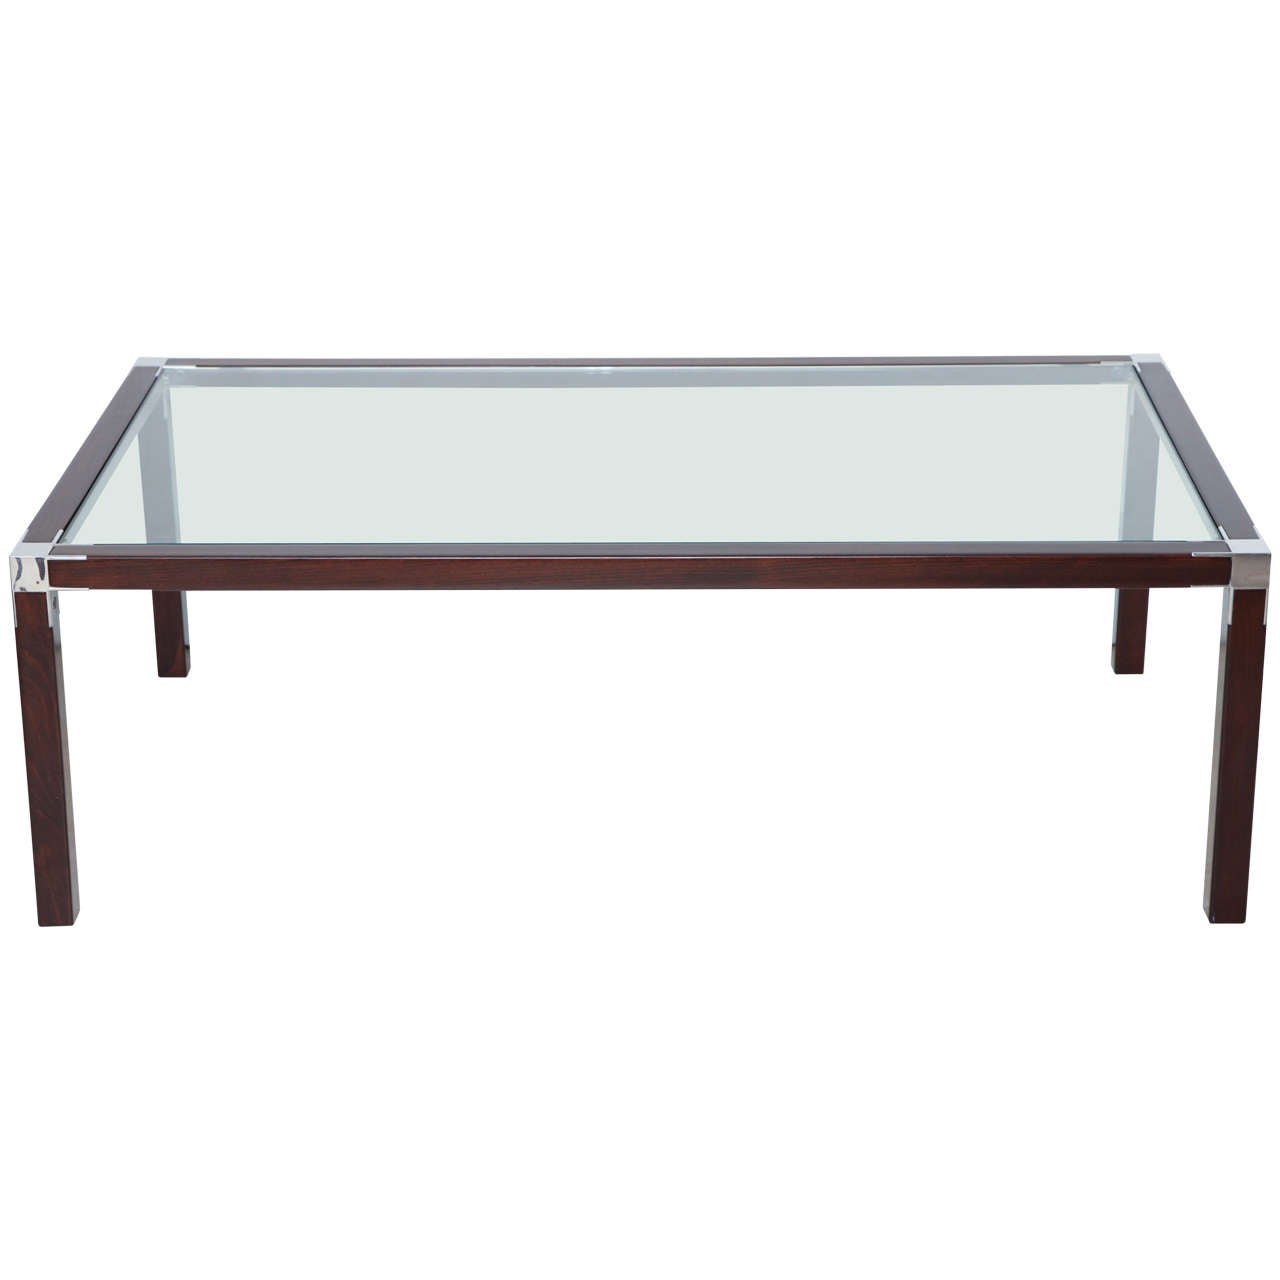 Mid century modern beech wood and nickel coffee table with for Contemporary glass top coffee table